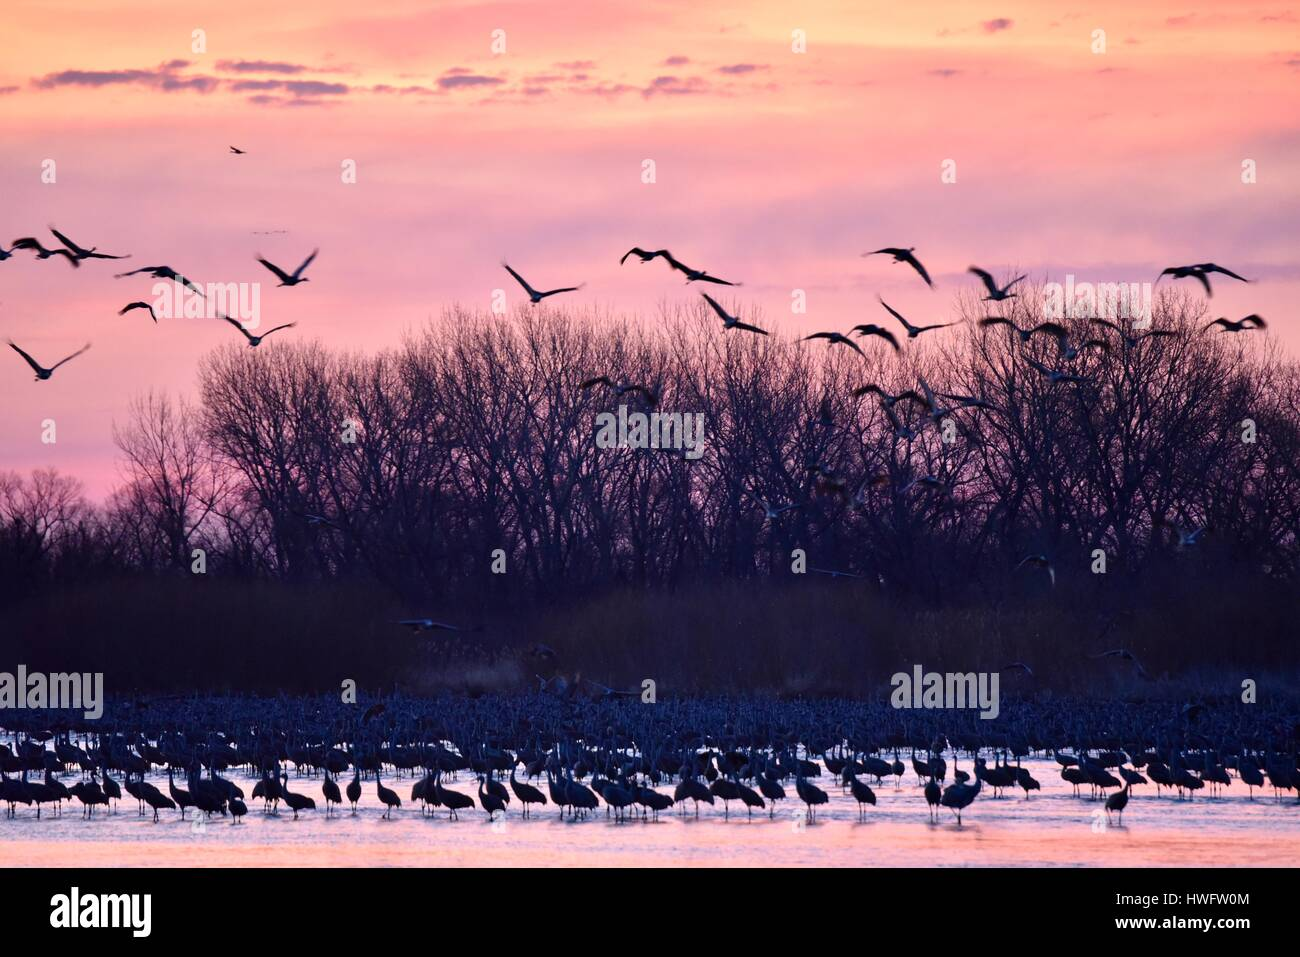 A Night With The Sandhill Cranes At The Crane Trust In >> Wood River Nebraska Usa 20th March 2017 Among The World S Great